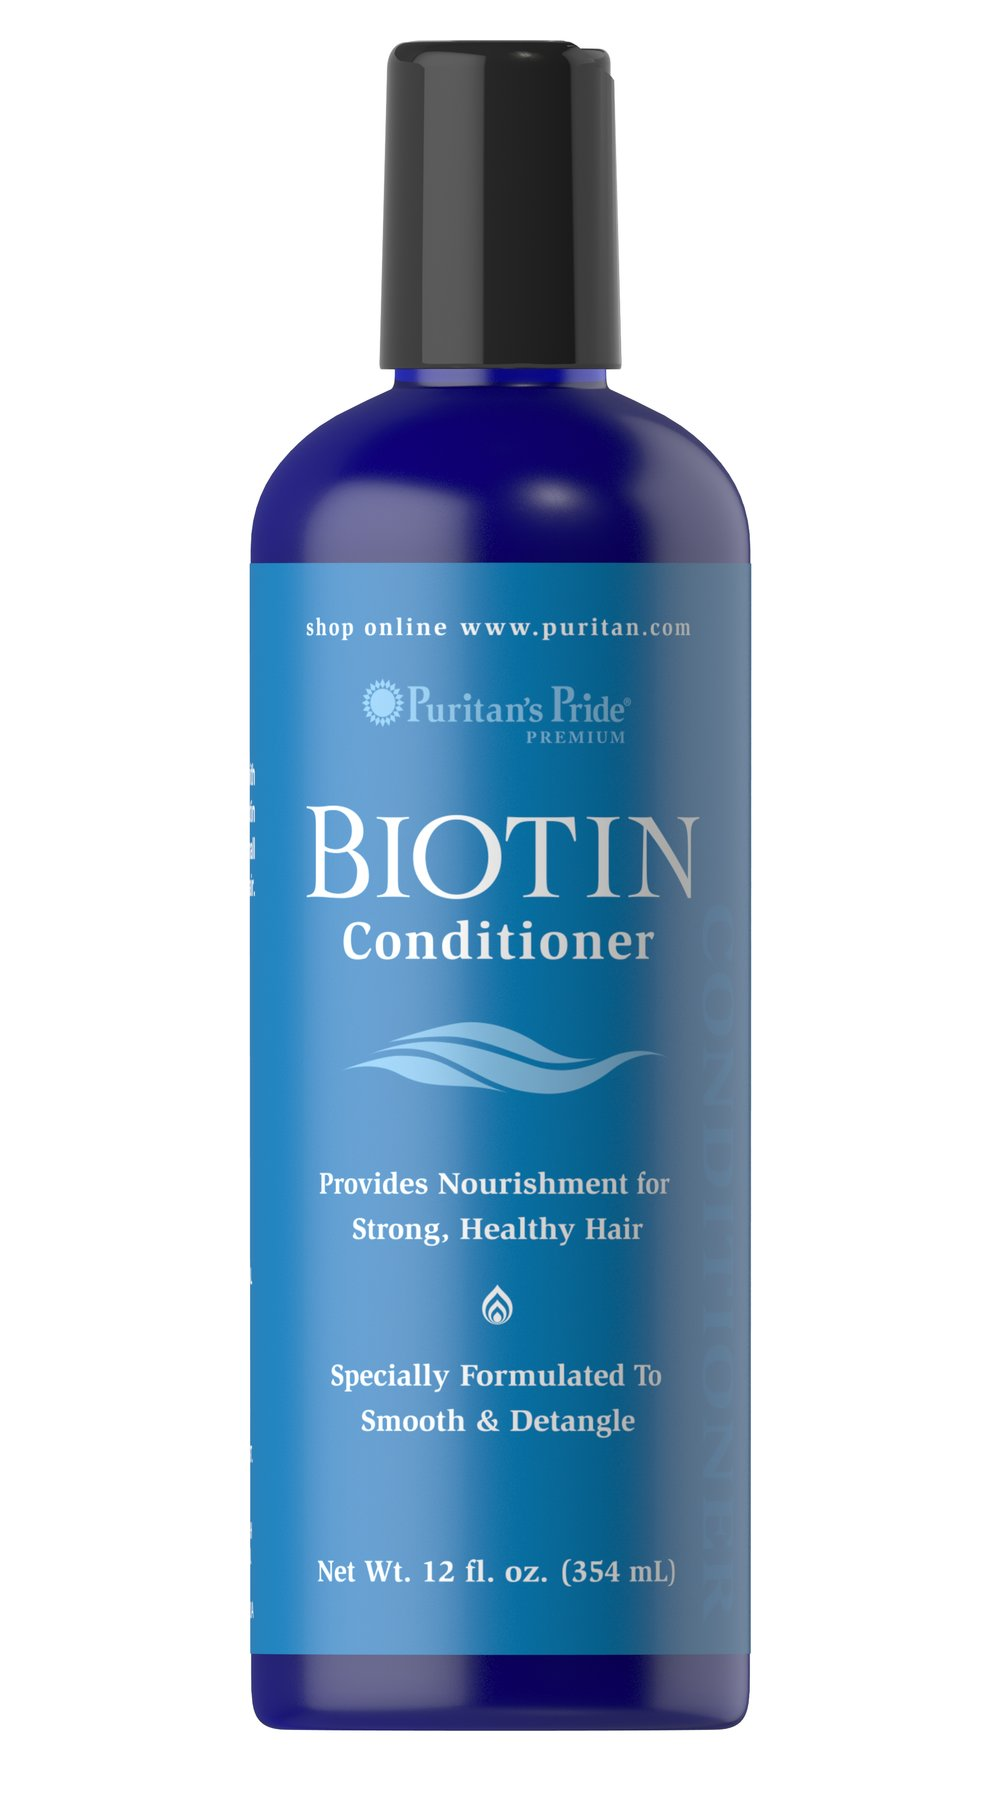 Biotin Conditioner Thumbnail Alternate Bottle View